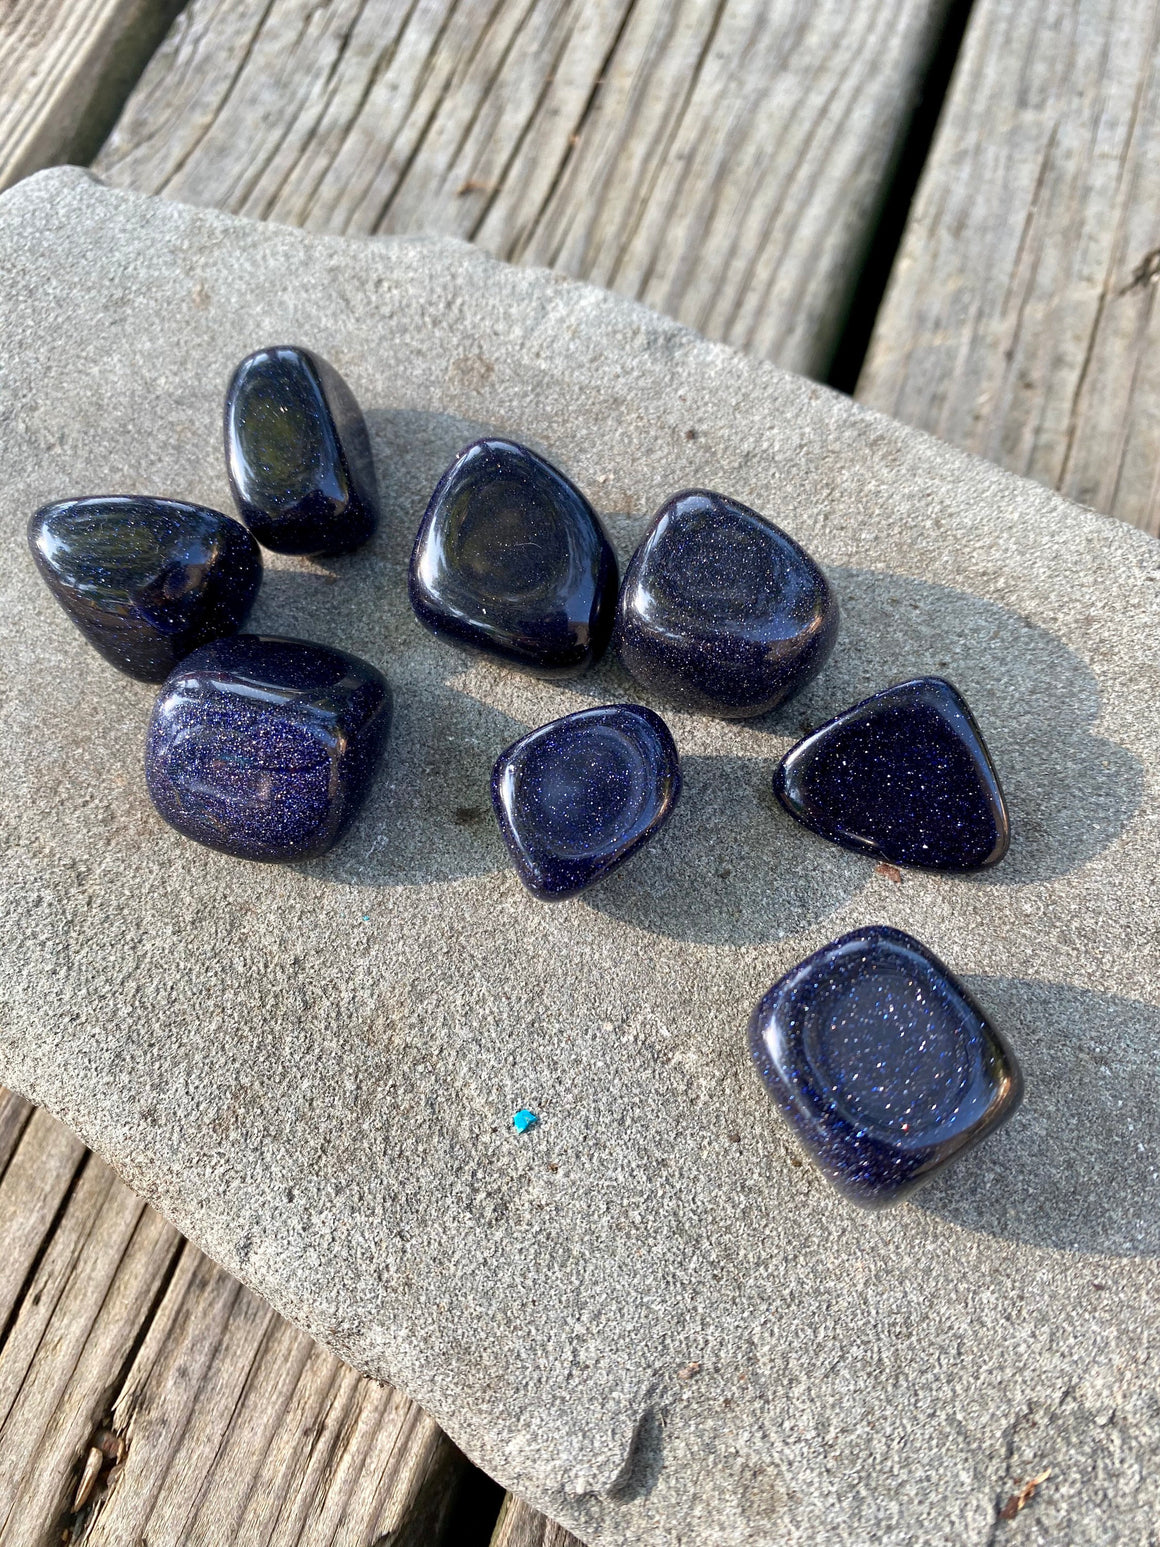 Blue Goldstone Tumbled Stone / polished stone / Sparkling Stone / Crystal for Abundance and Prosperity